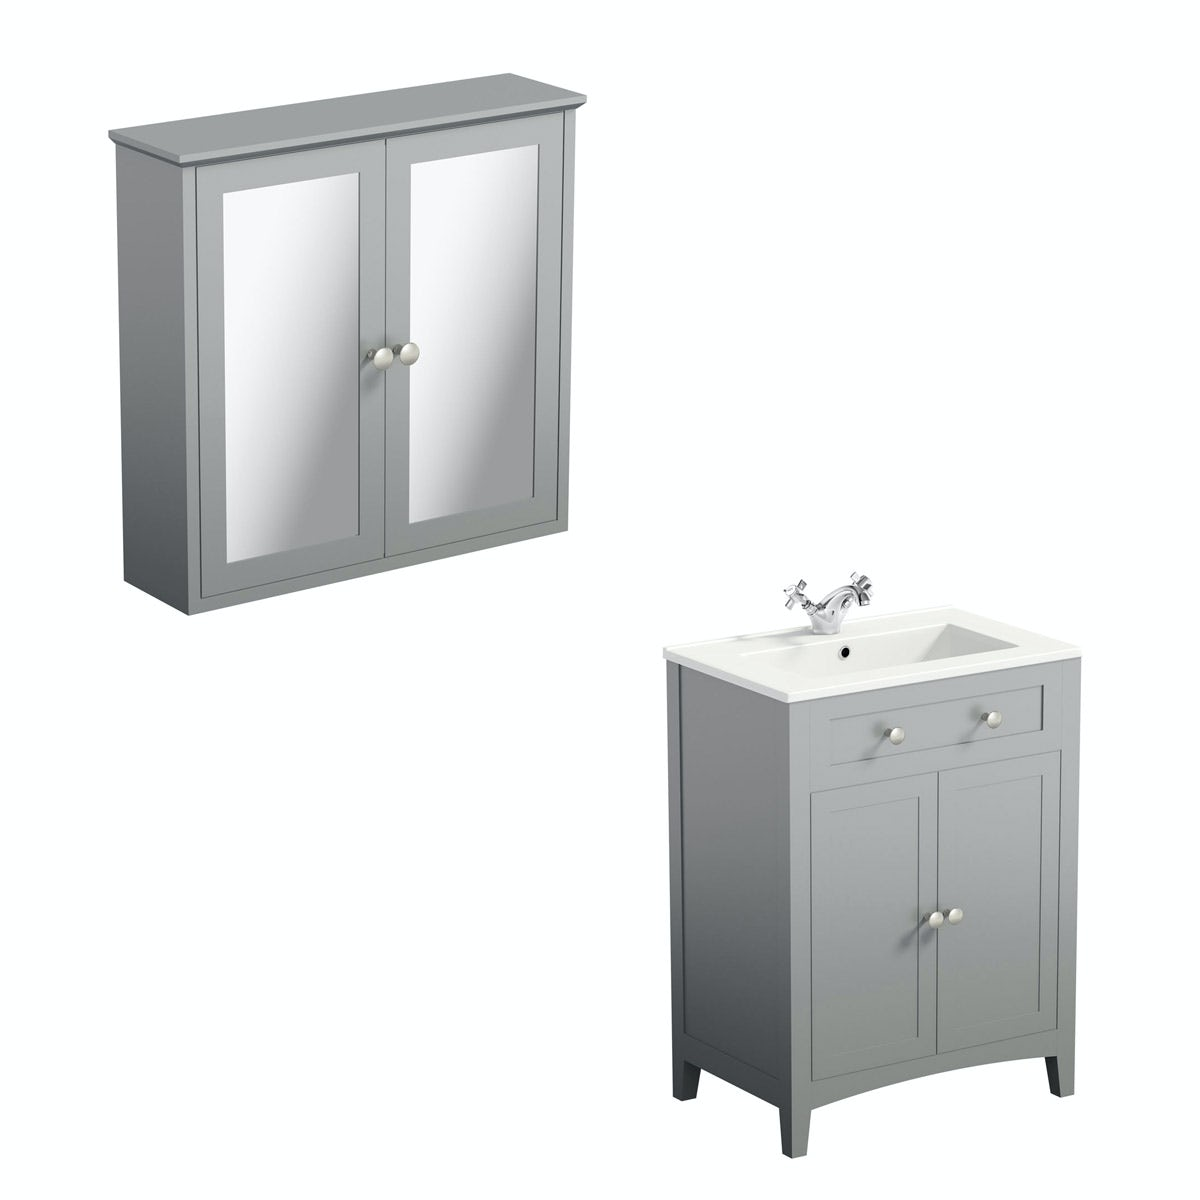 The bath co camberley grey vanity unit 600mm and mirror for Bathroom cabinets 600mm